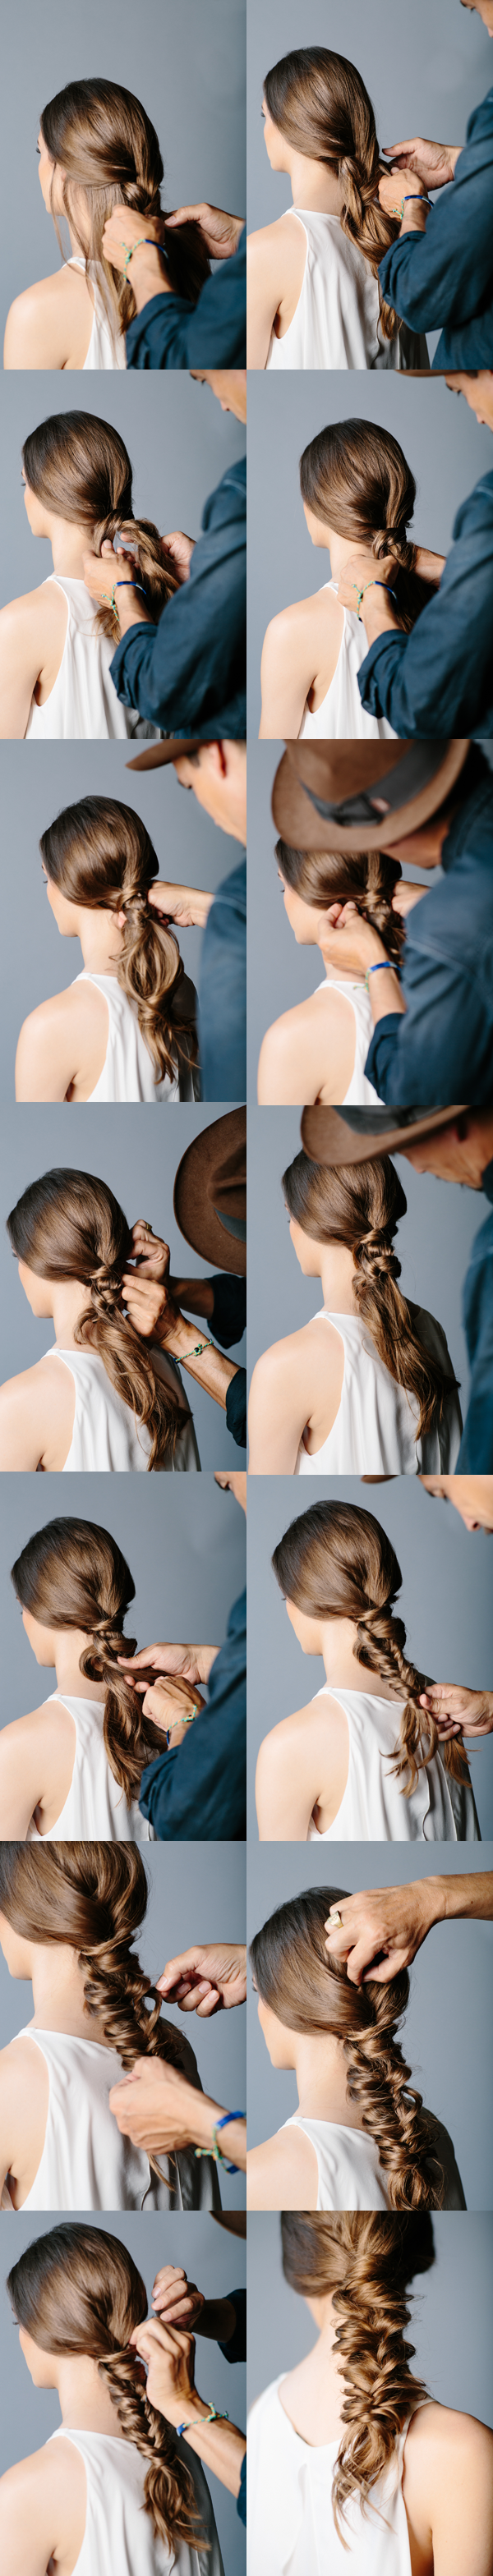 diy-tutorial-fishtail-braid